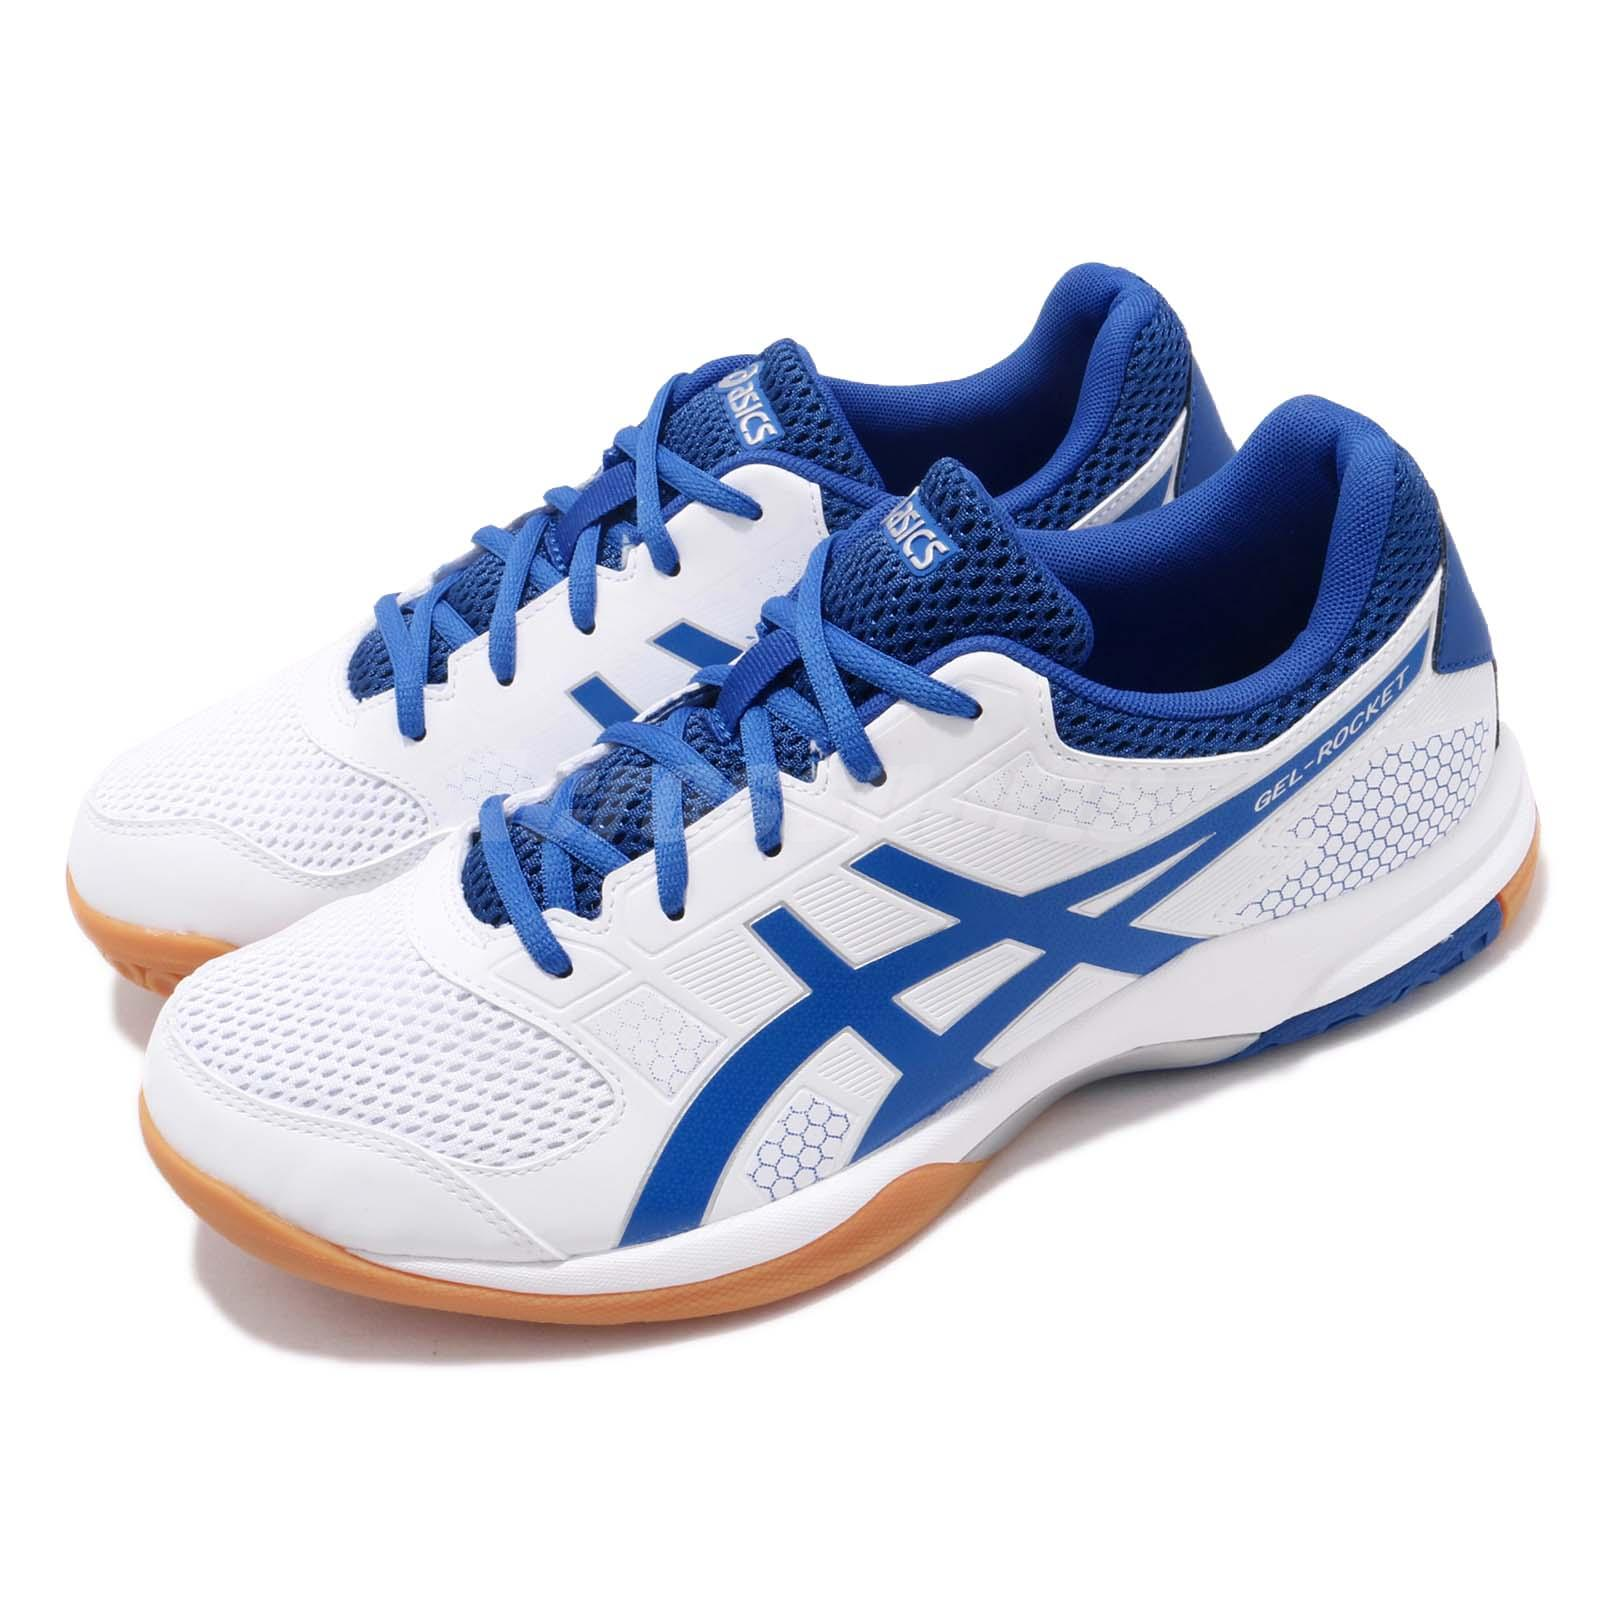 Details about Asics Gel-Rocket 8 White Blue Gum Men Volleyball Badminton  Shoes B706Y-124